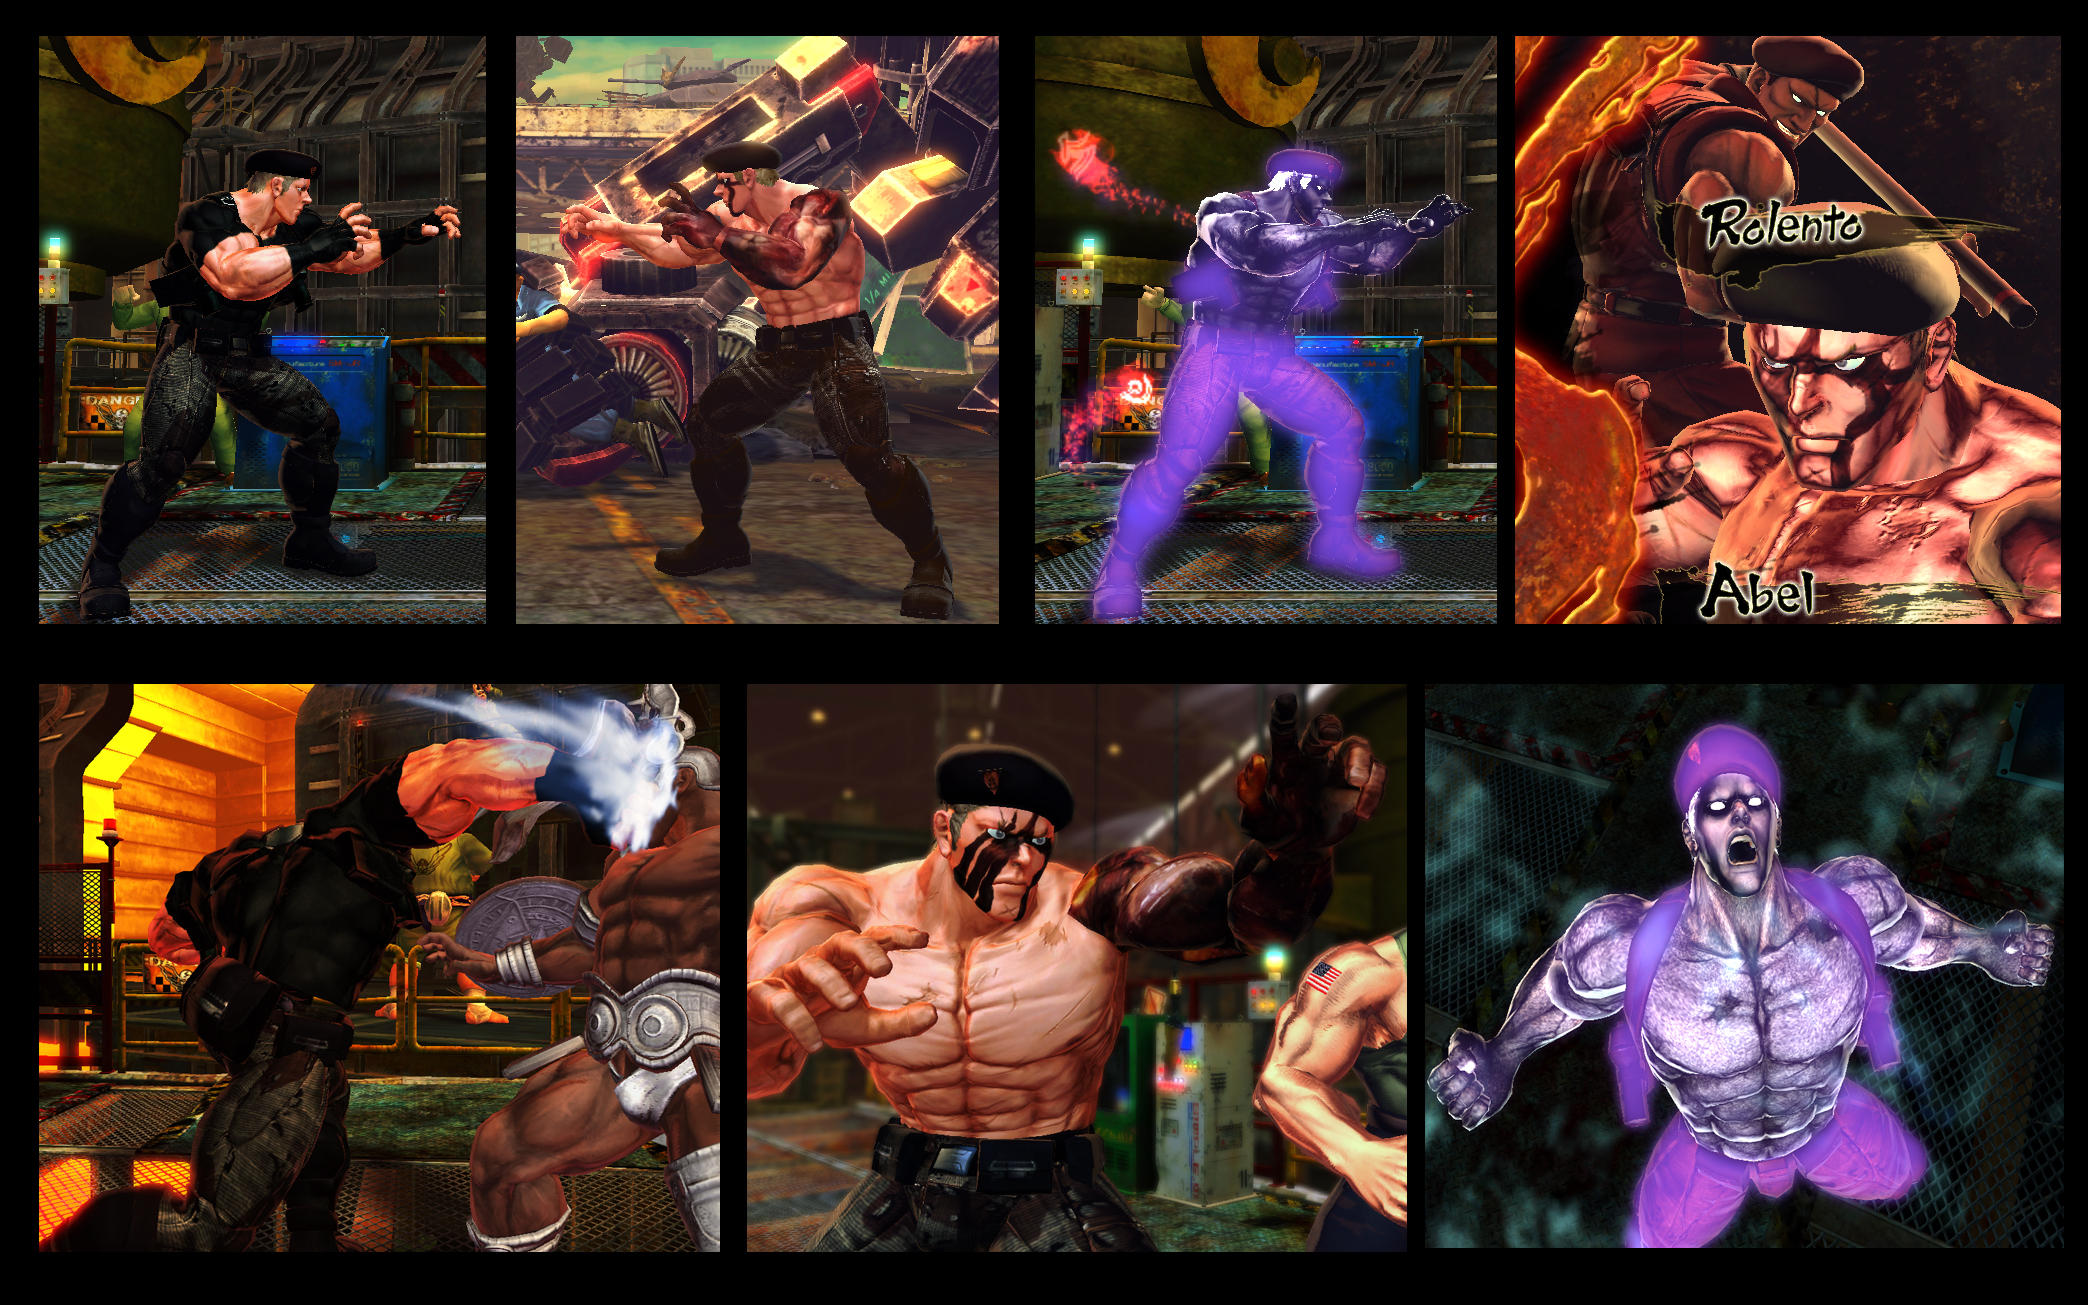 SF X TEKKEN Abel Krauser vol 2 by monkeygigabuster